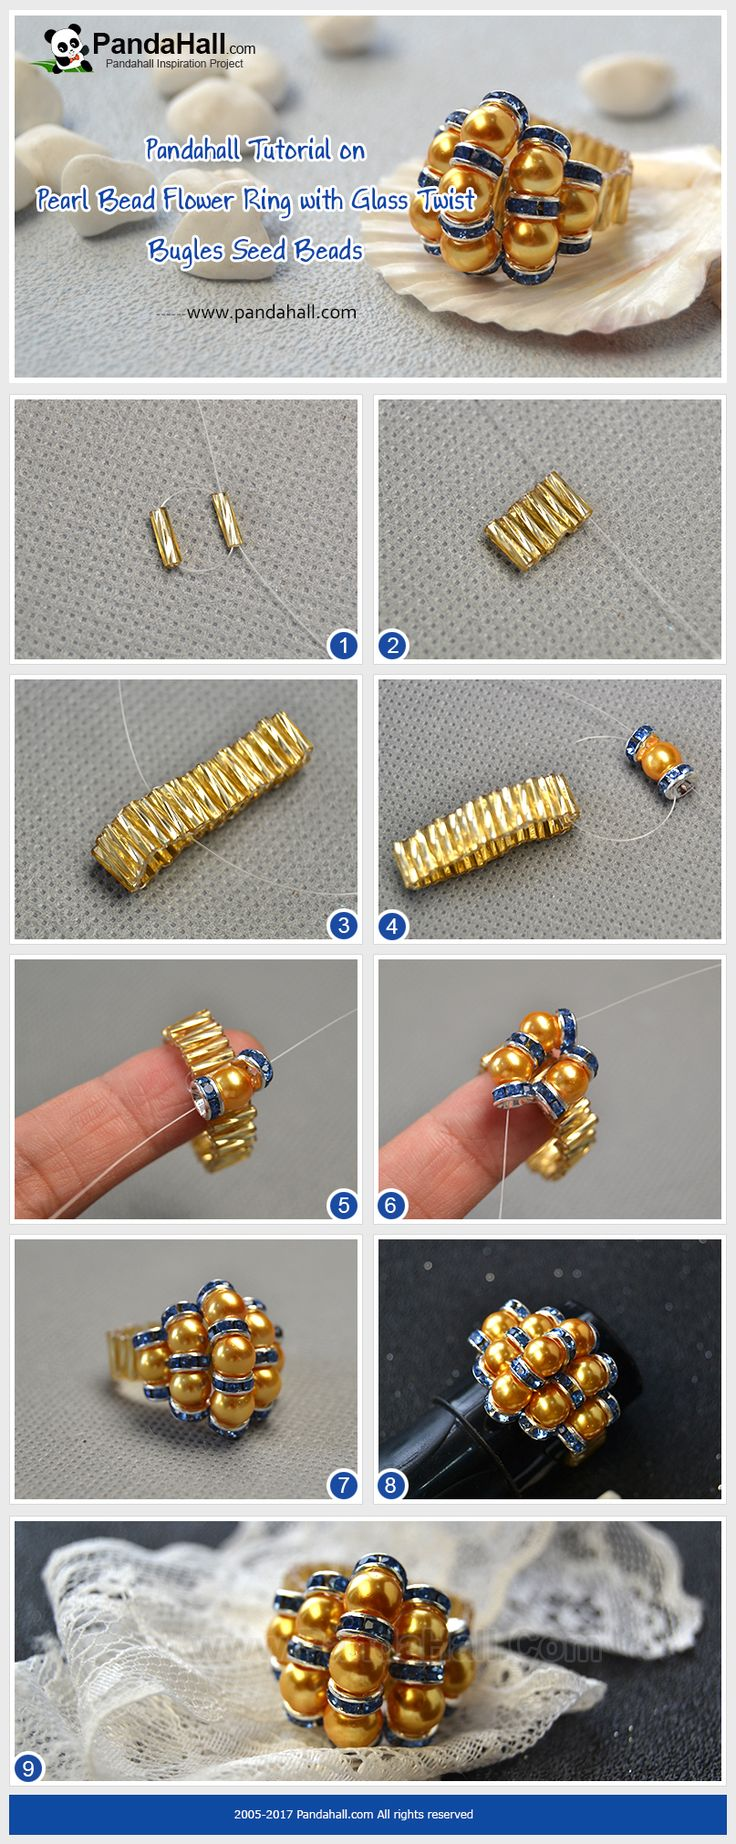 How to Make Pearl Bead Flower Ring with Glass Twist Bugles Seed Beads With pearl beads, glass twist bugle seed beads and rhinestone spacer beads, you can change them into a beautiful ring in 10 minutes!